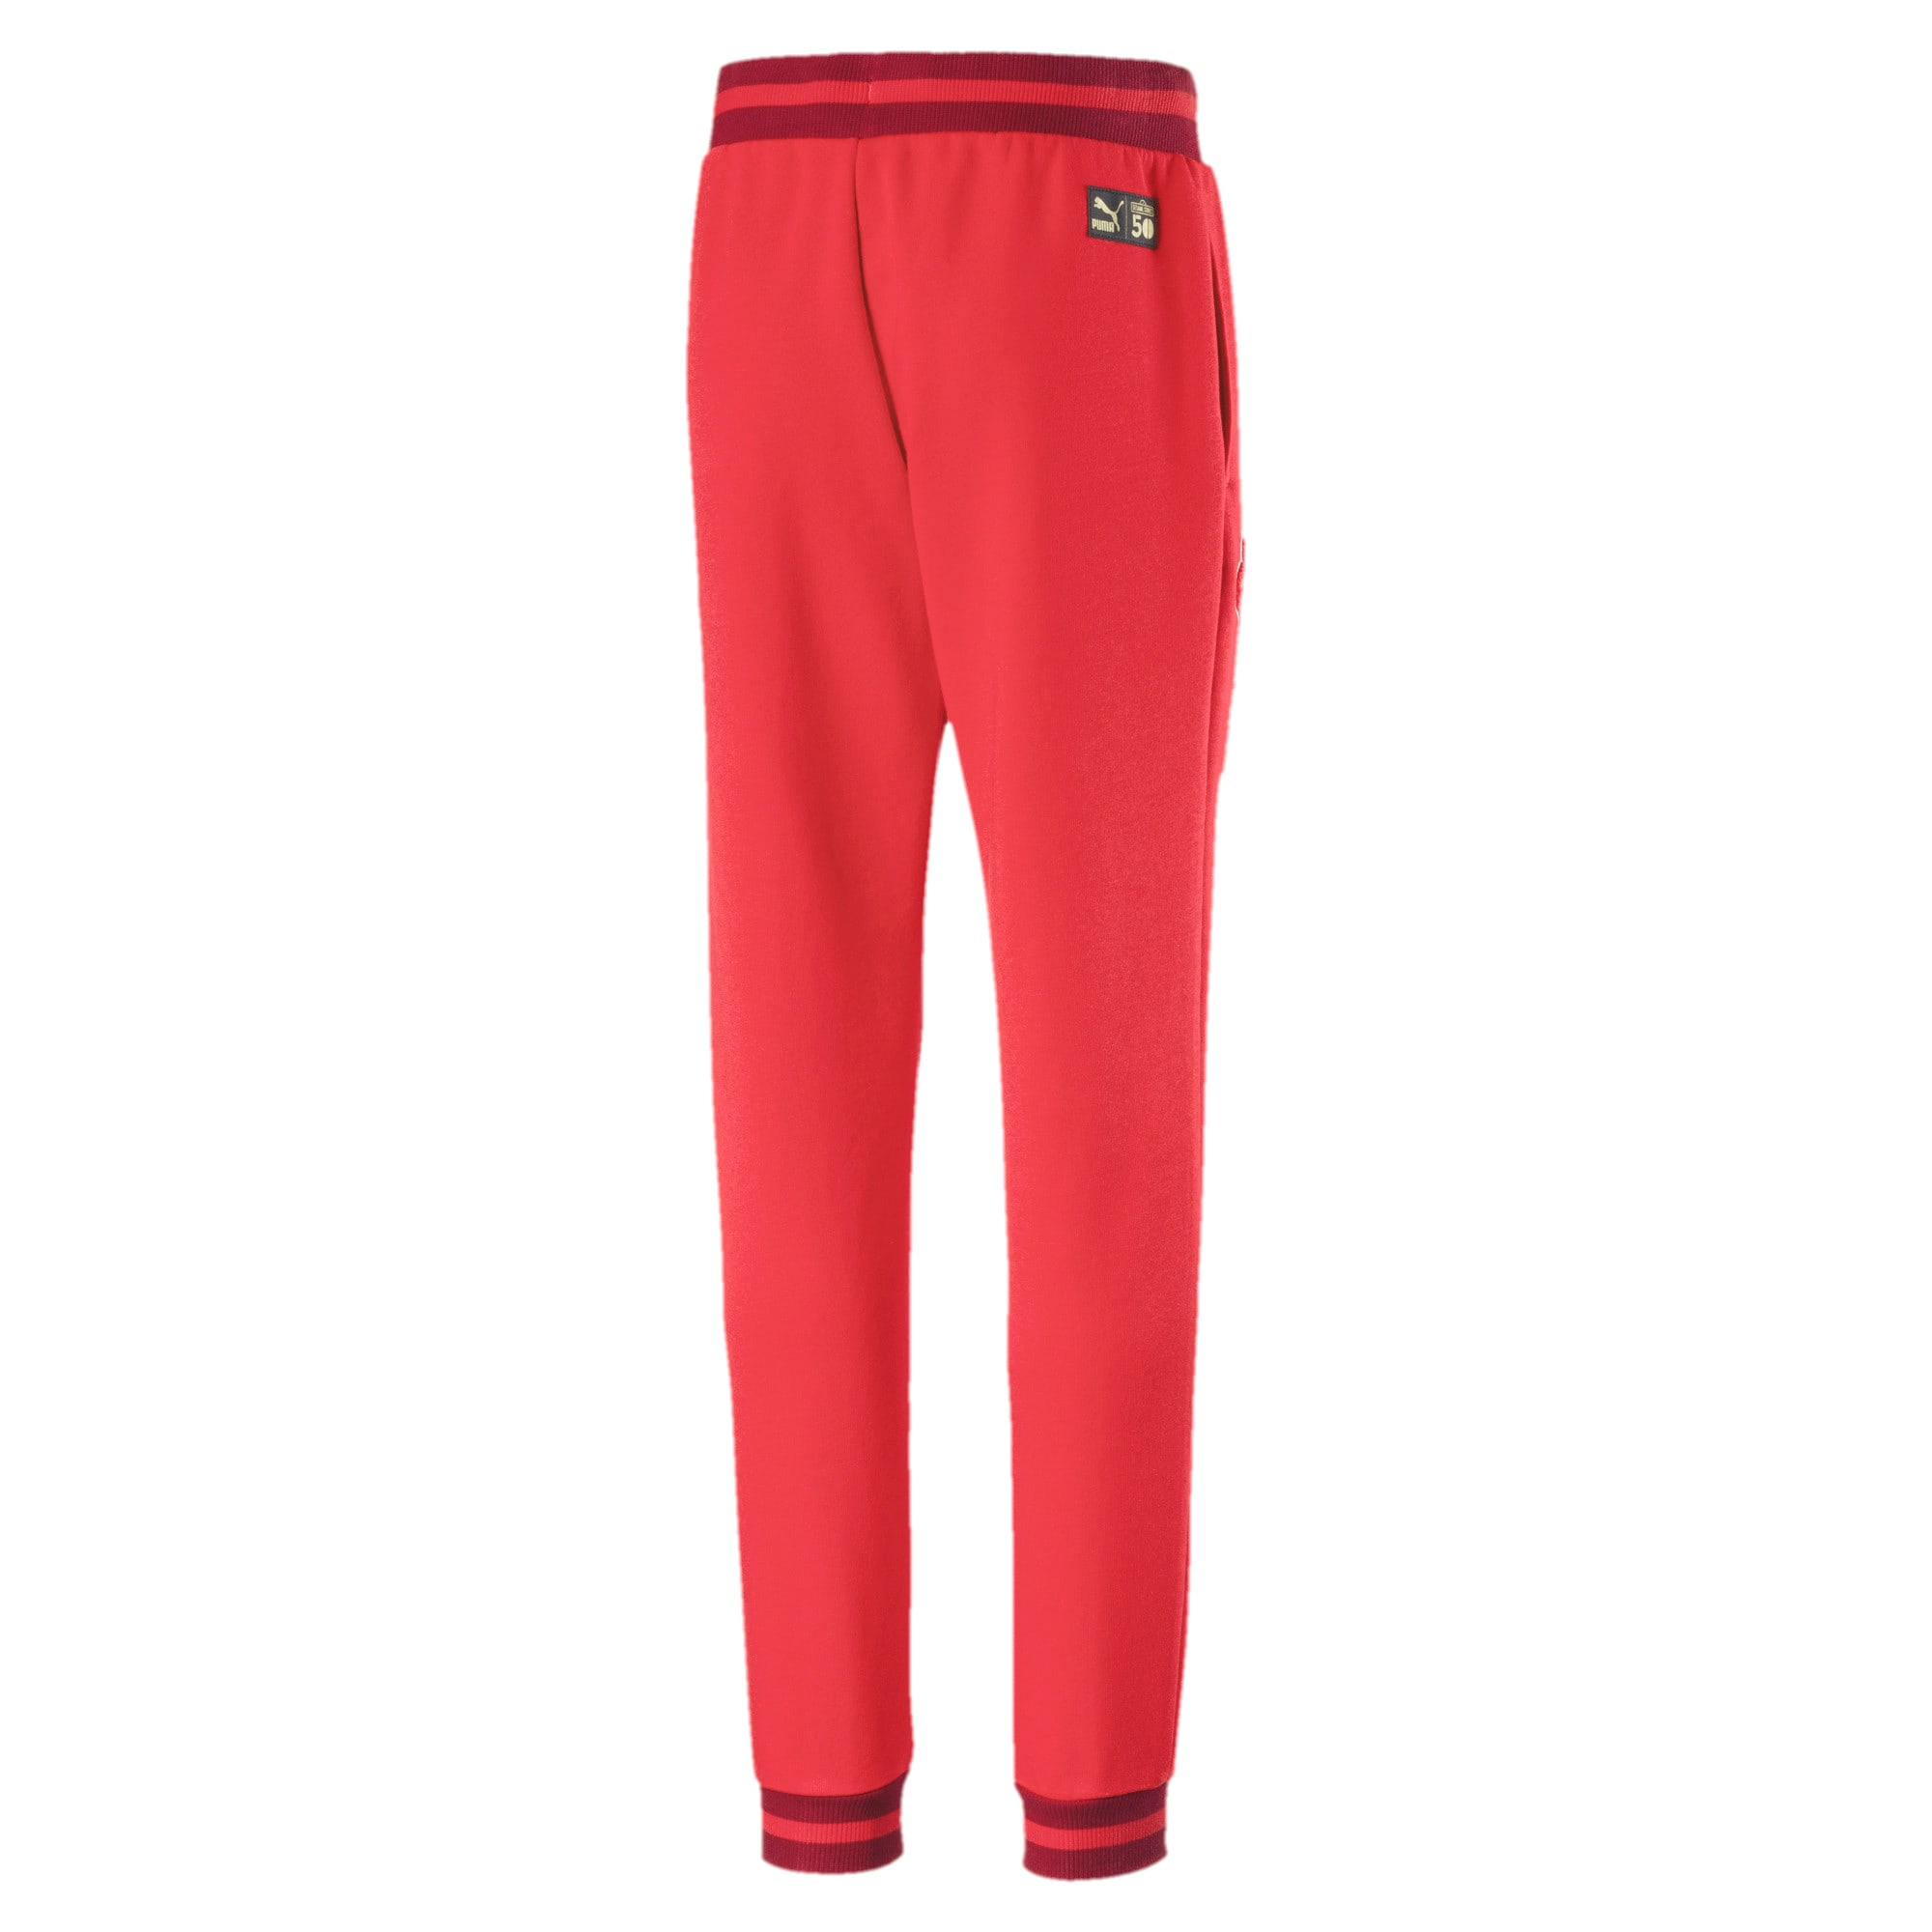 Thumbnail 2 of PUMA x SESAME STREET Kids' Sweatpants, High Risk Red, medium